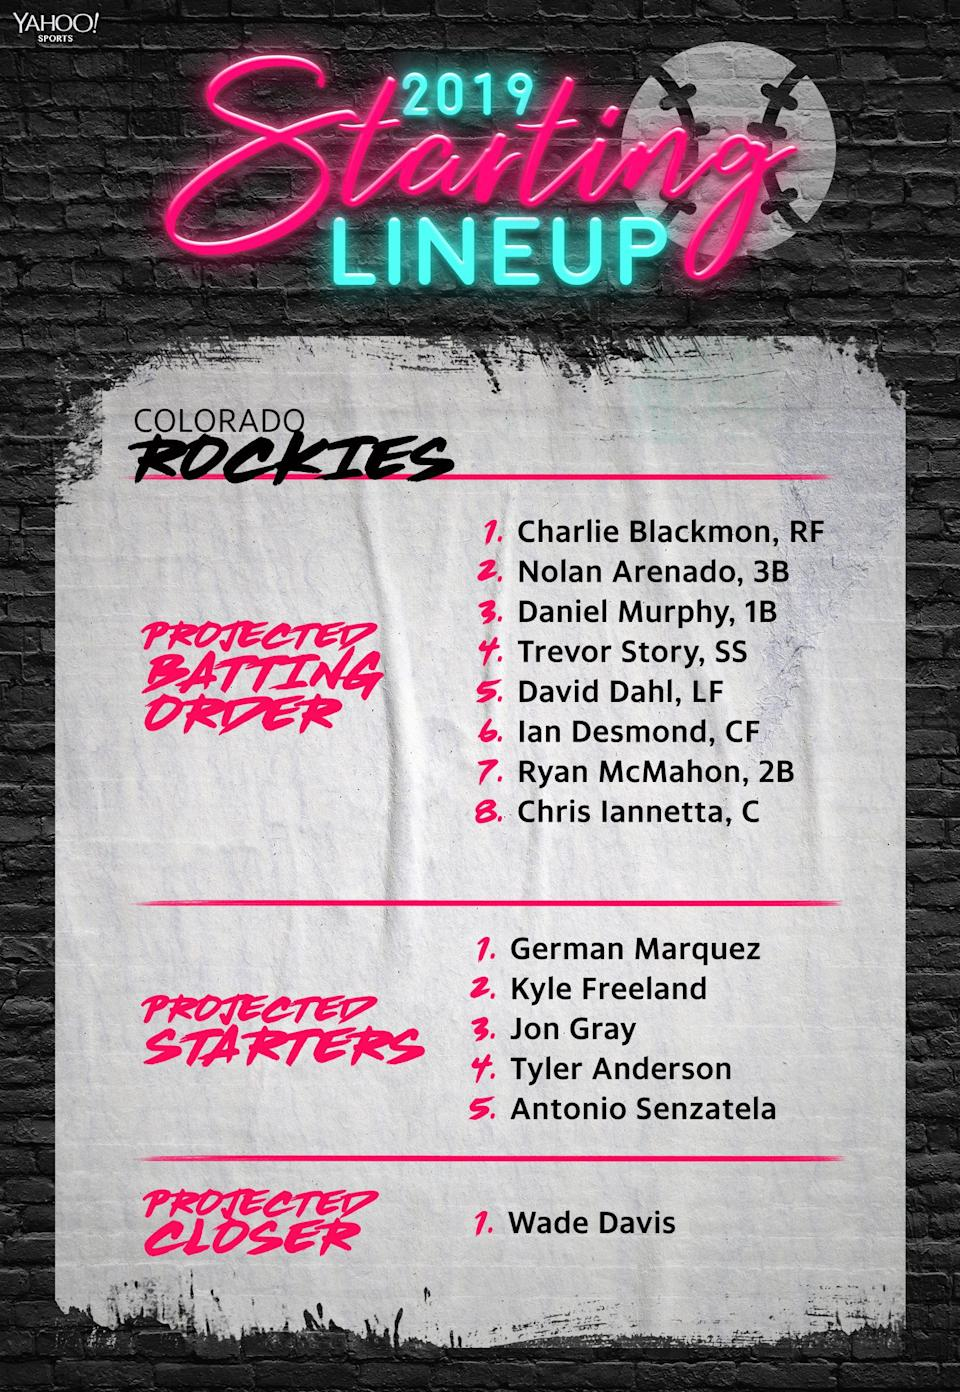 The projected Colorado Rockies lineup for 2019. (Yahoo Sports)